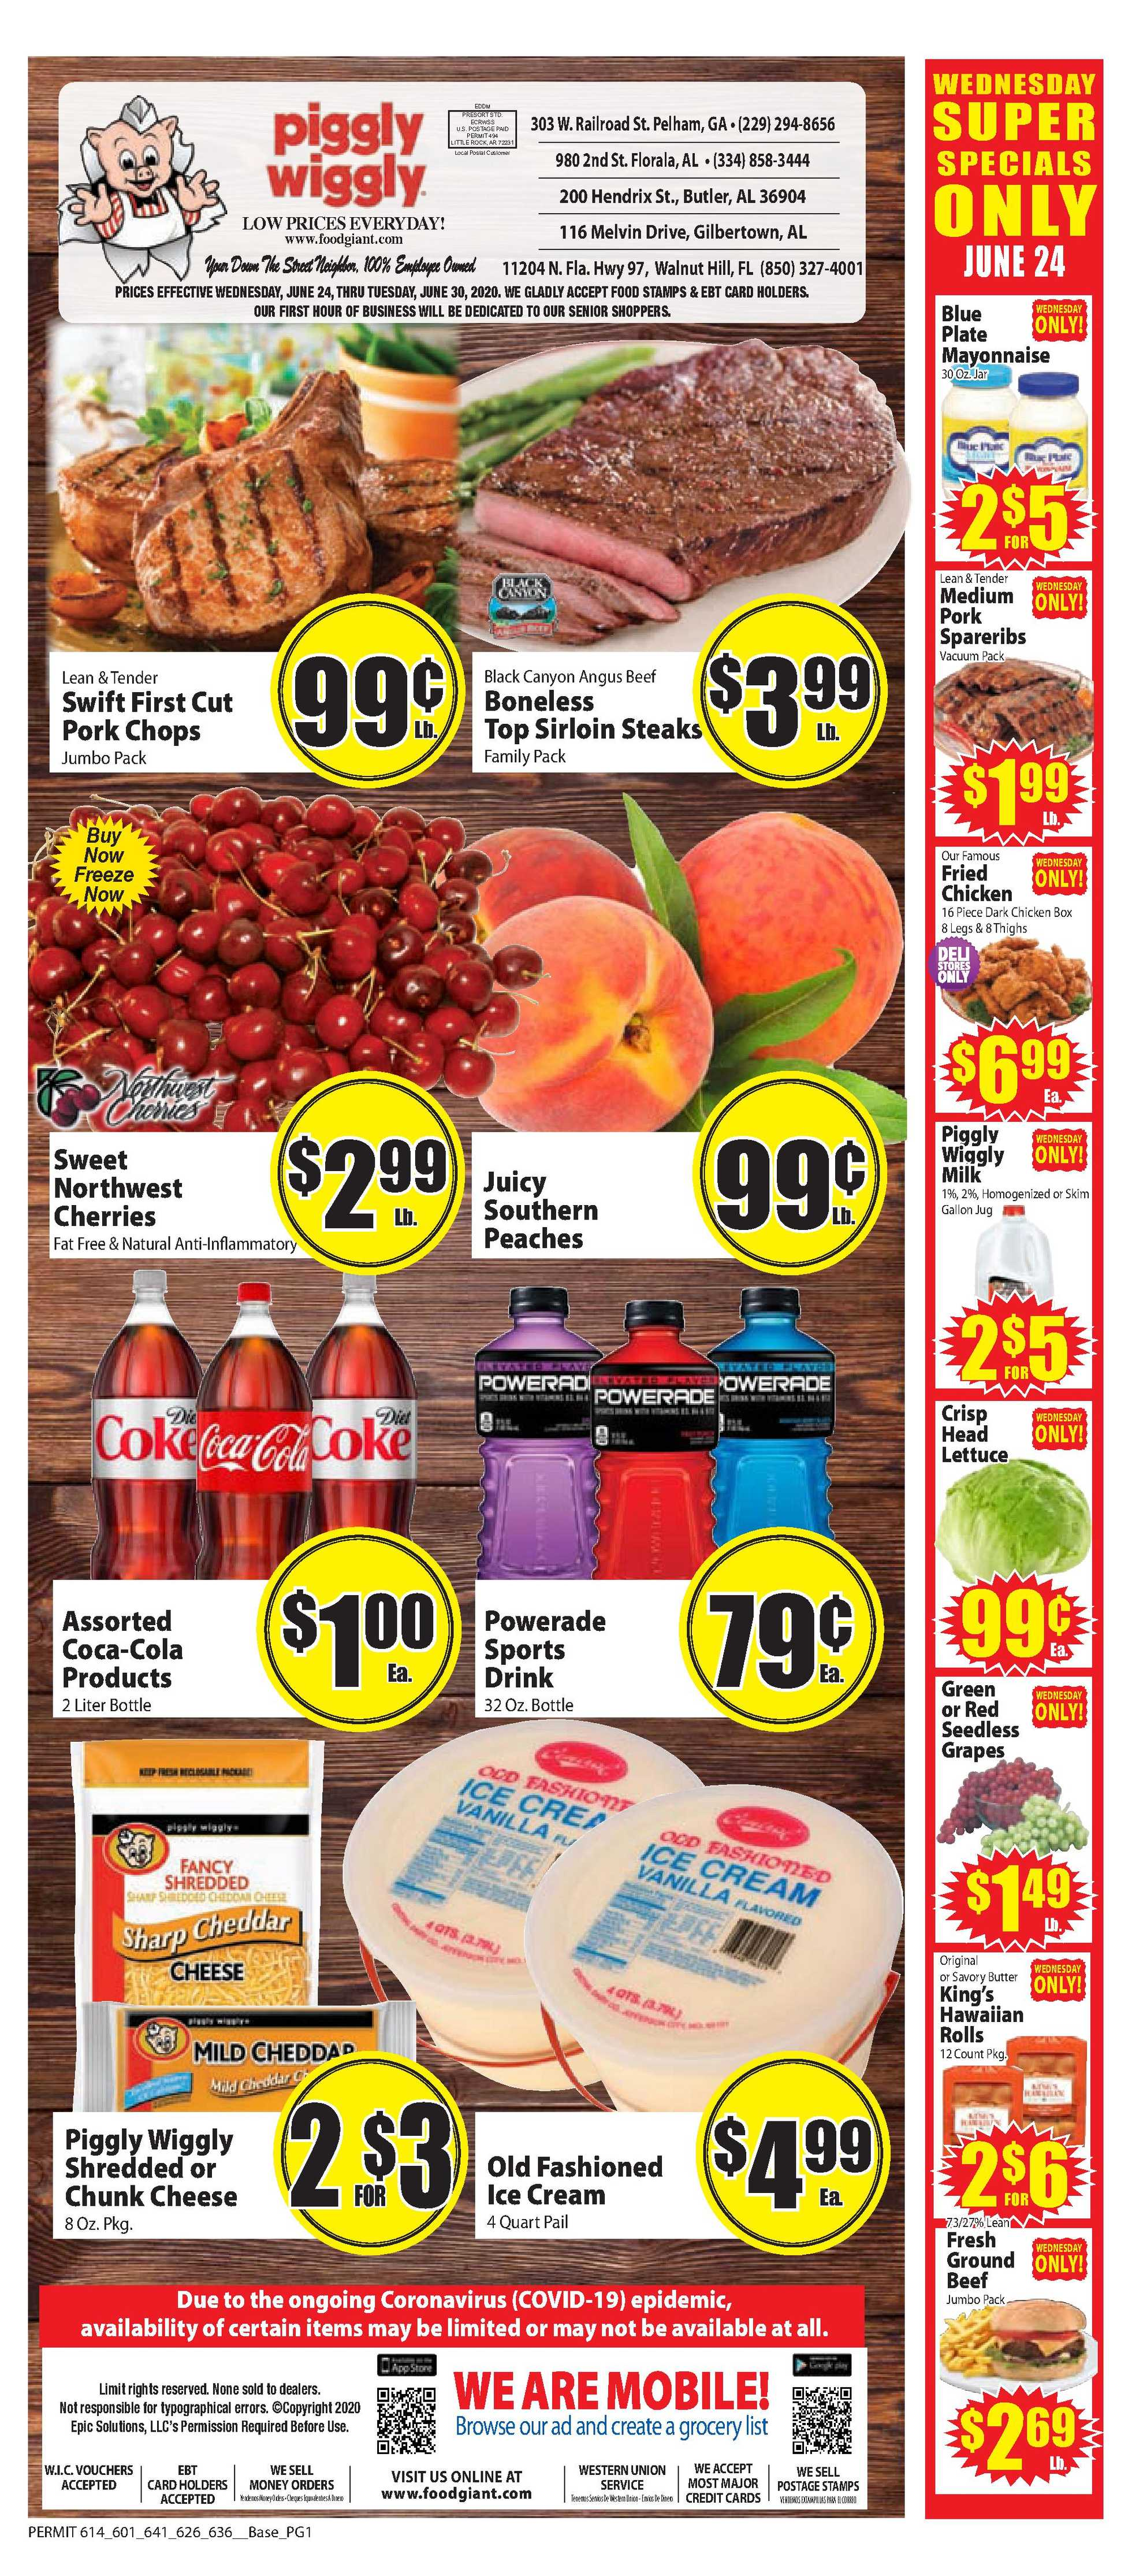 Piggly Wiggly - deals are valid from 06/24/20 to 06/30/20 - page 1.